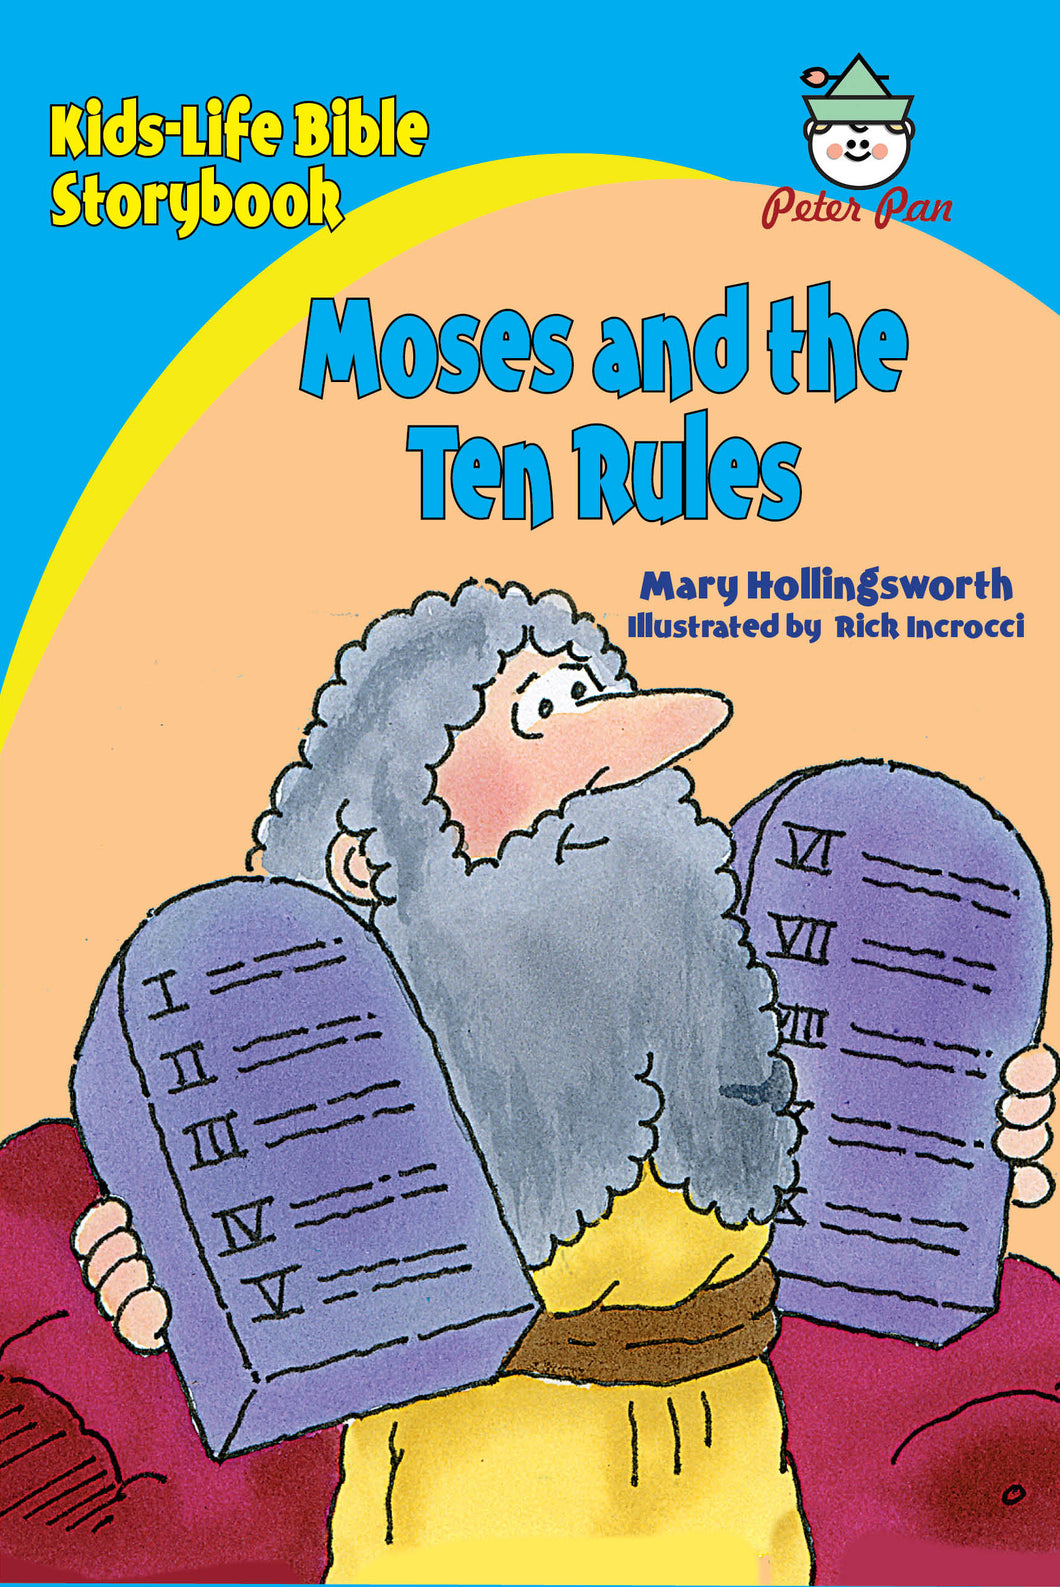 Moses and the Ten Rules